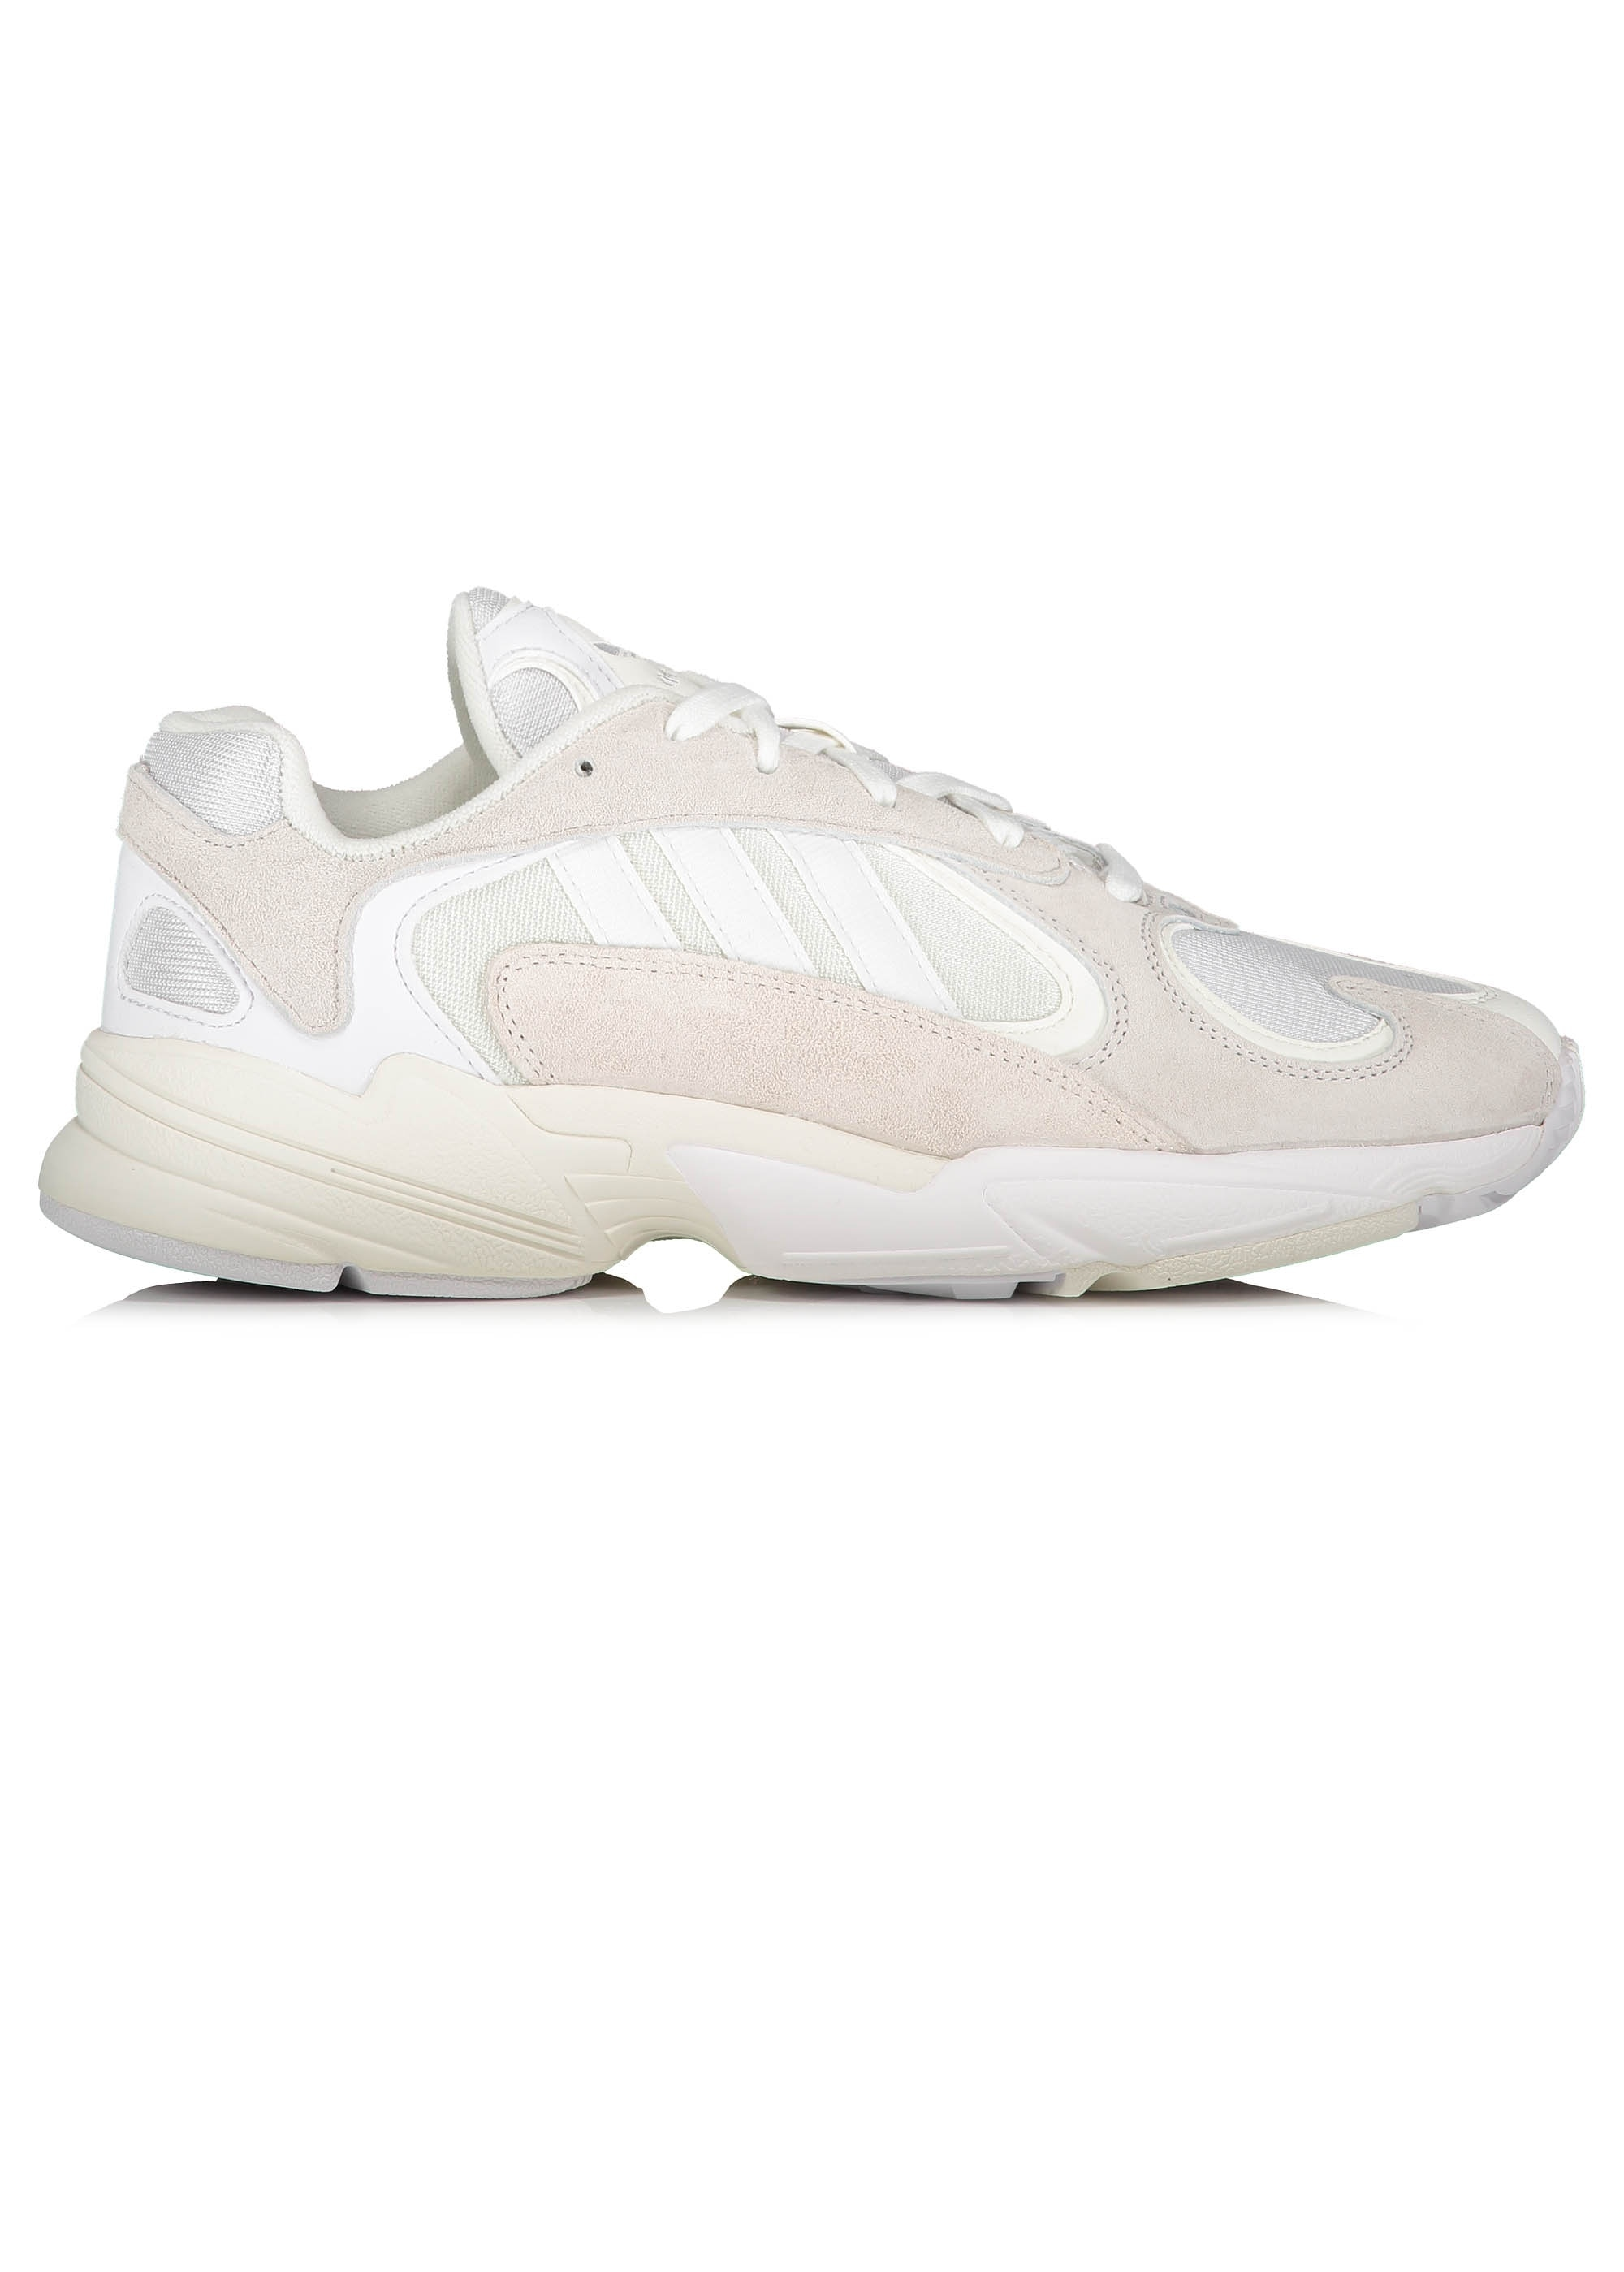 adidas Yung 1 Shoes Beige | adidas UK